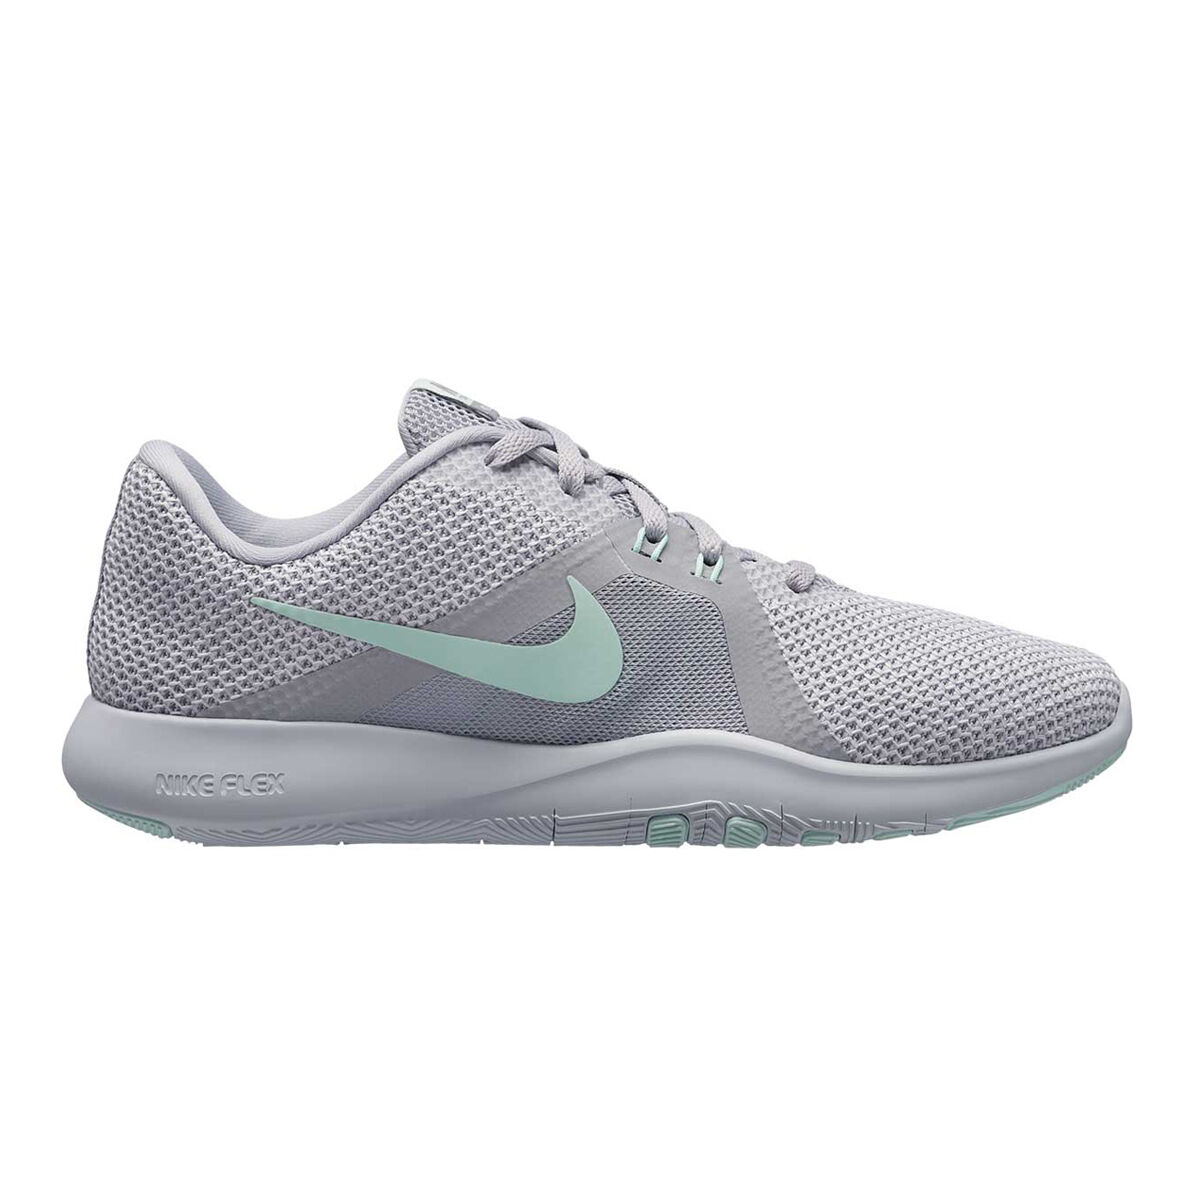 Nike Flex Trainer 9 Women's Training Shoes Grey